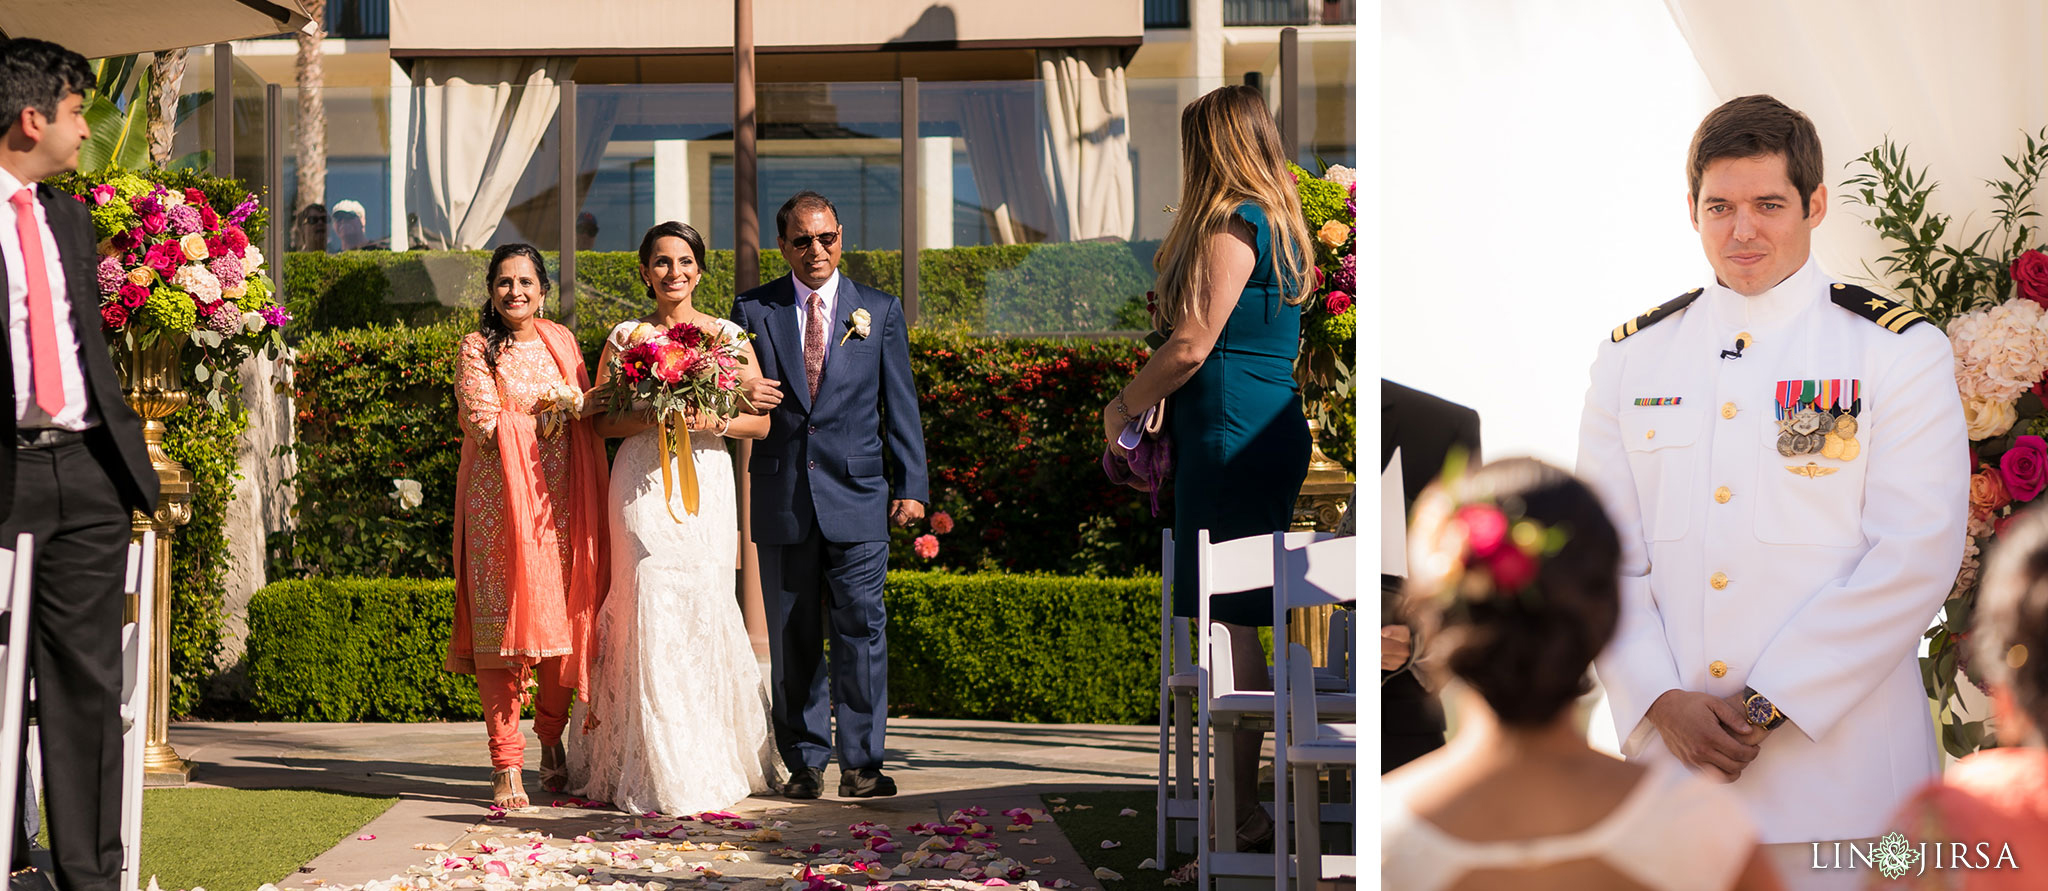 14 newport beach marriott hotel wedding ceremony photography 1